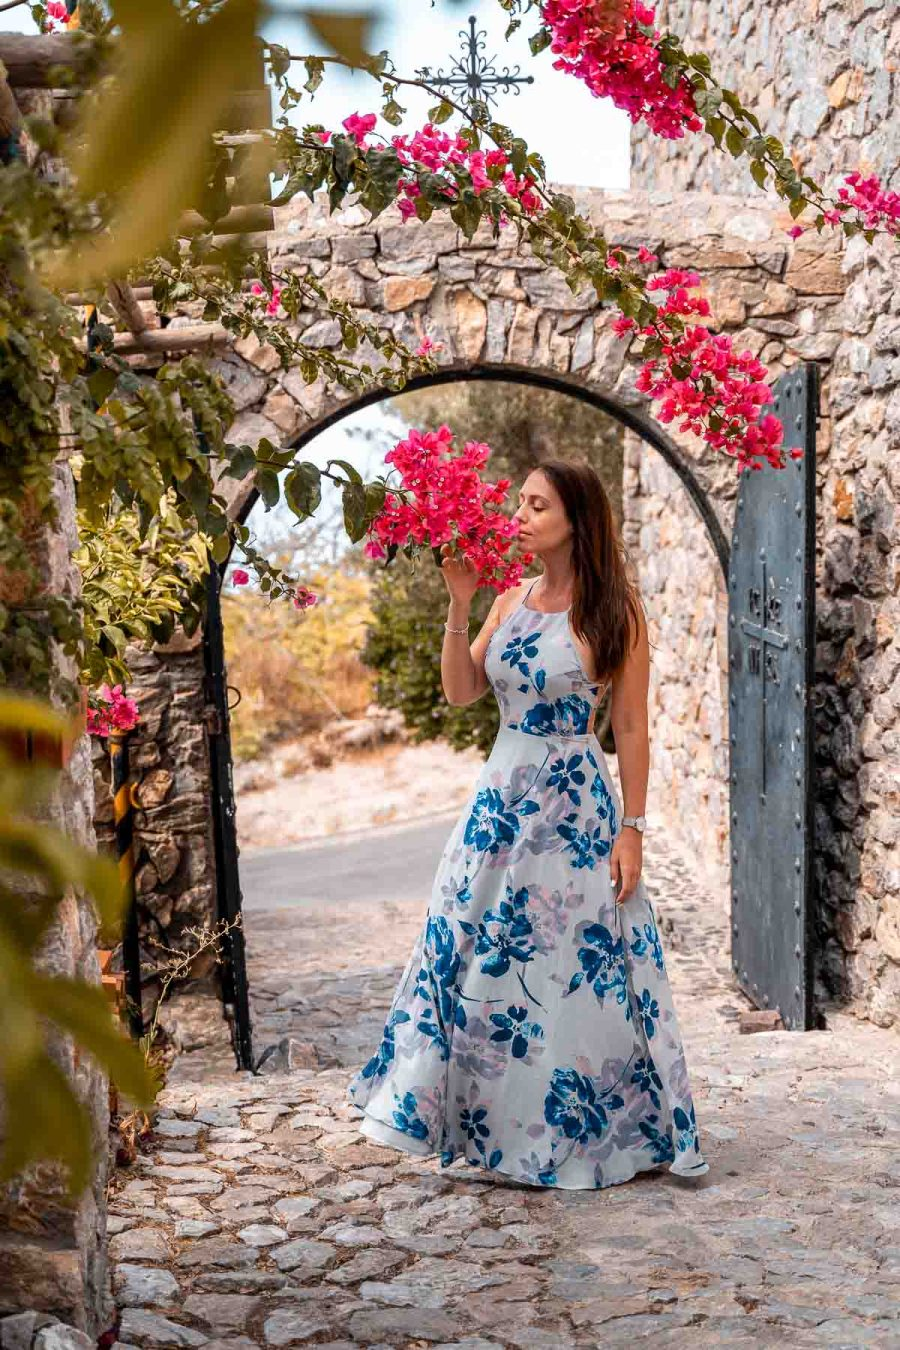 Girl in a blue floral dress smelling the bougainvillea at the Monastery in Santorini